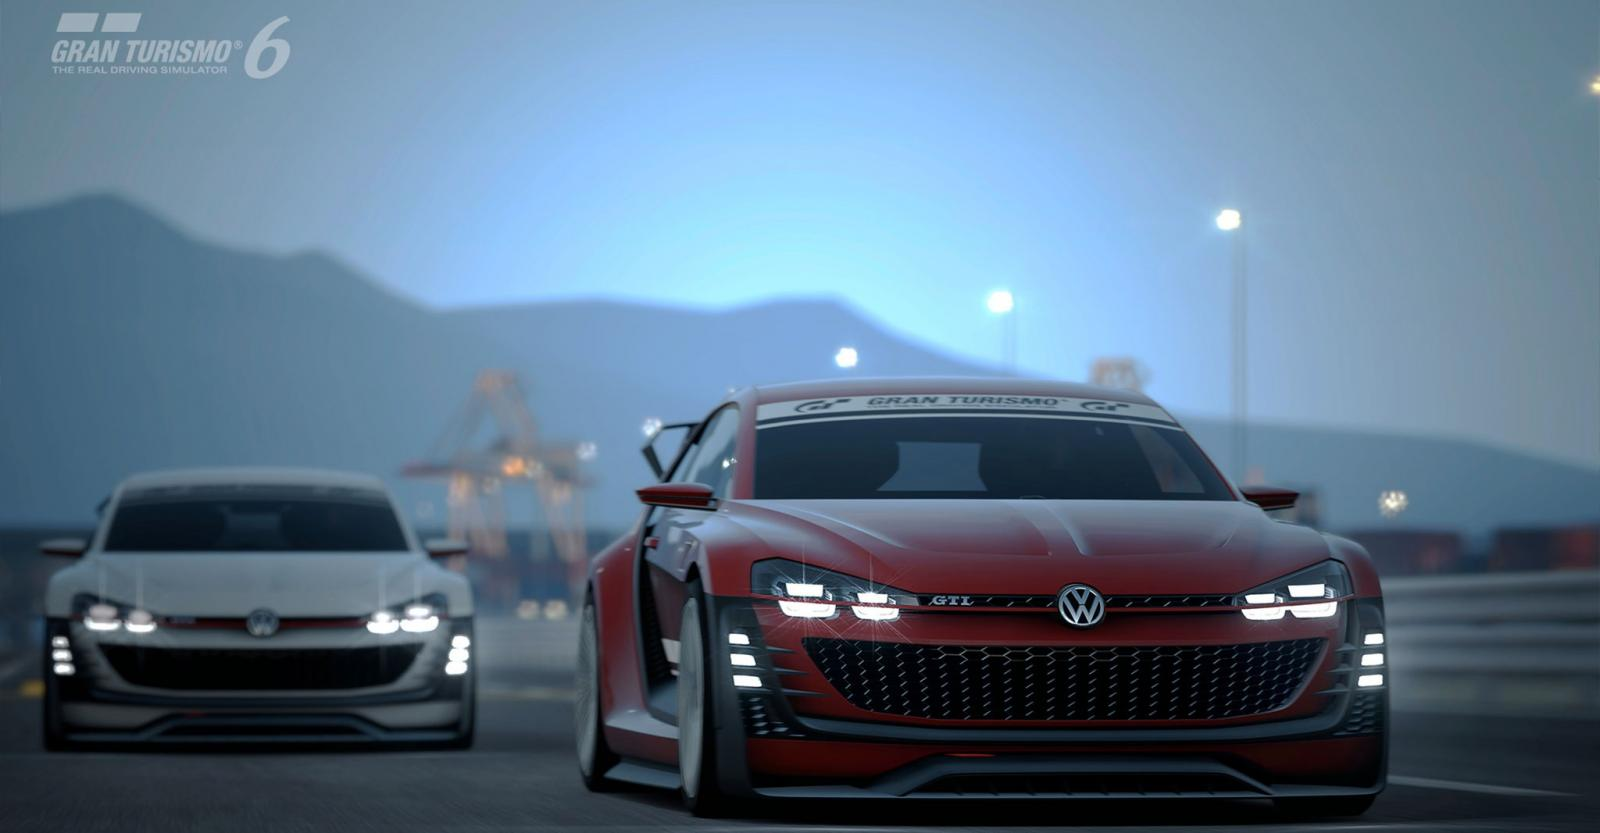 Electric Golf Caddy >> Volkswagen Unveils New GTI Supersport Vision Gran Turismo for GT6 - autoevolution